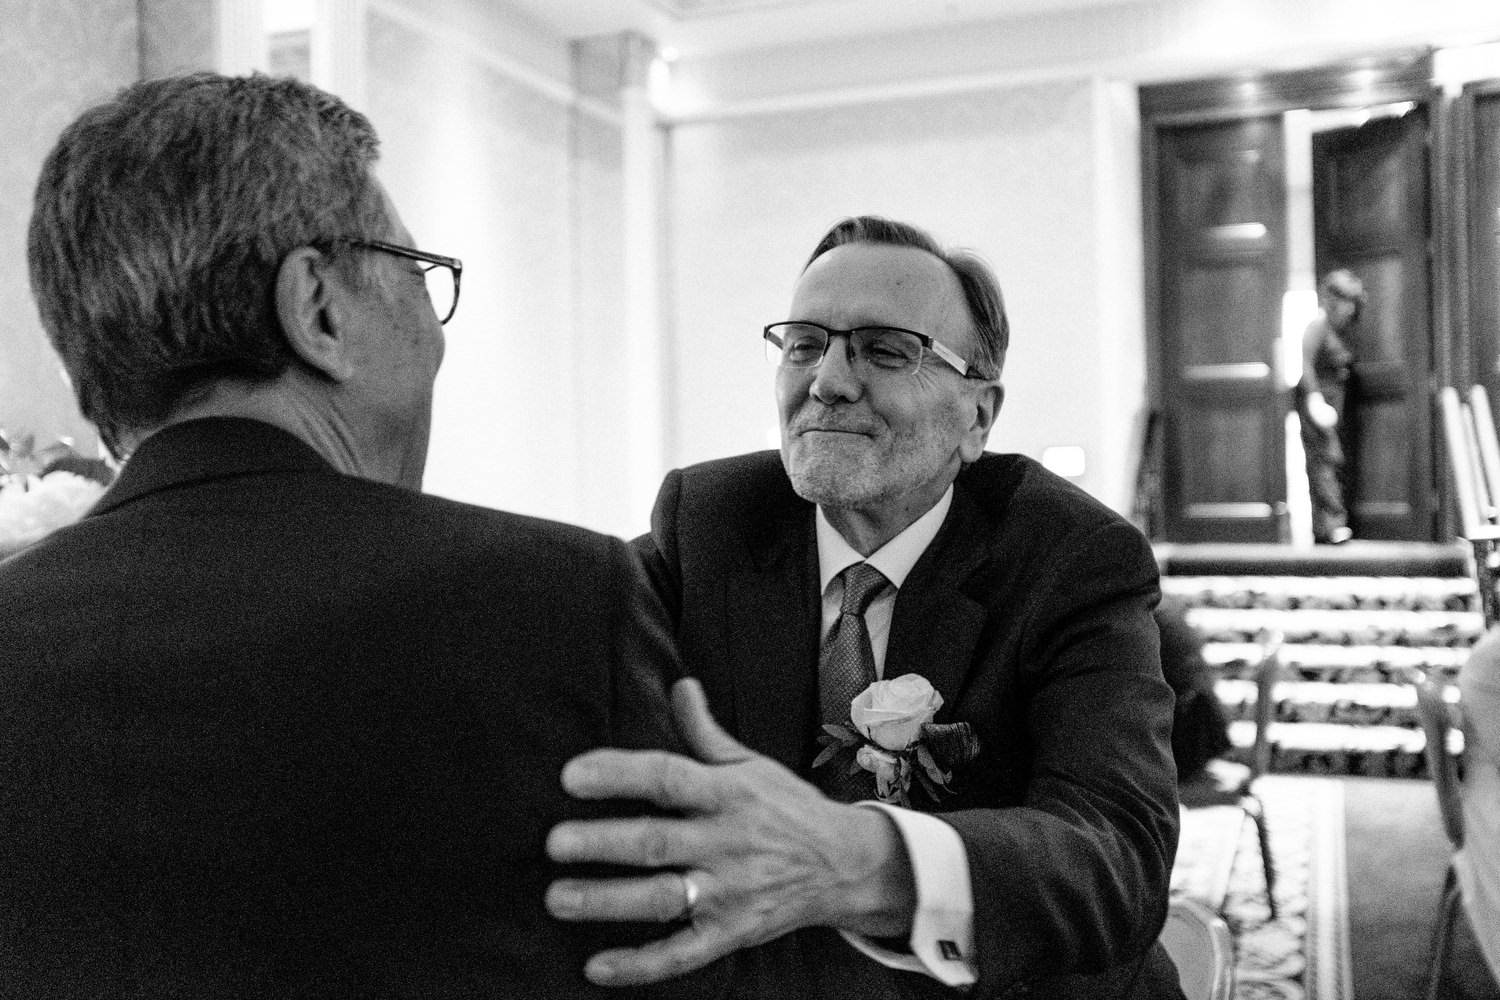 dmp0584_photographer_wedding_dublin_david_mcclelland_candid_photography_fujifilm_shelbourne_reception_documentary